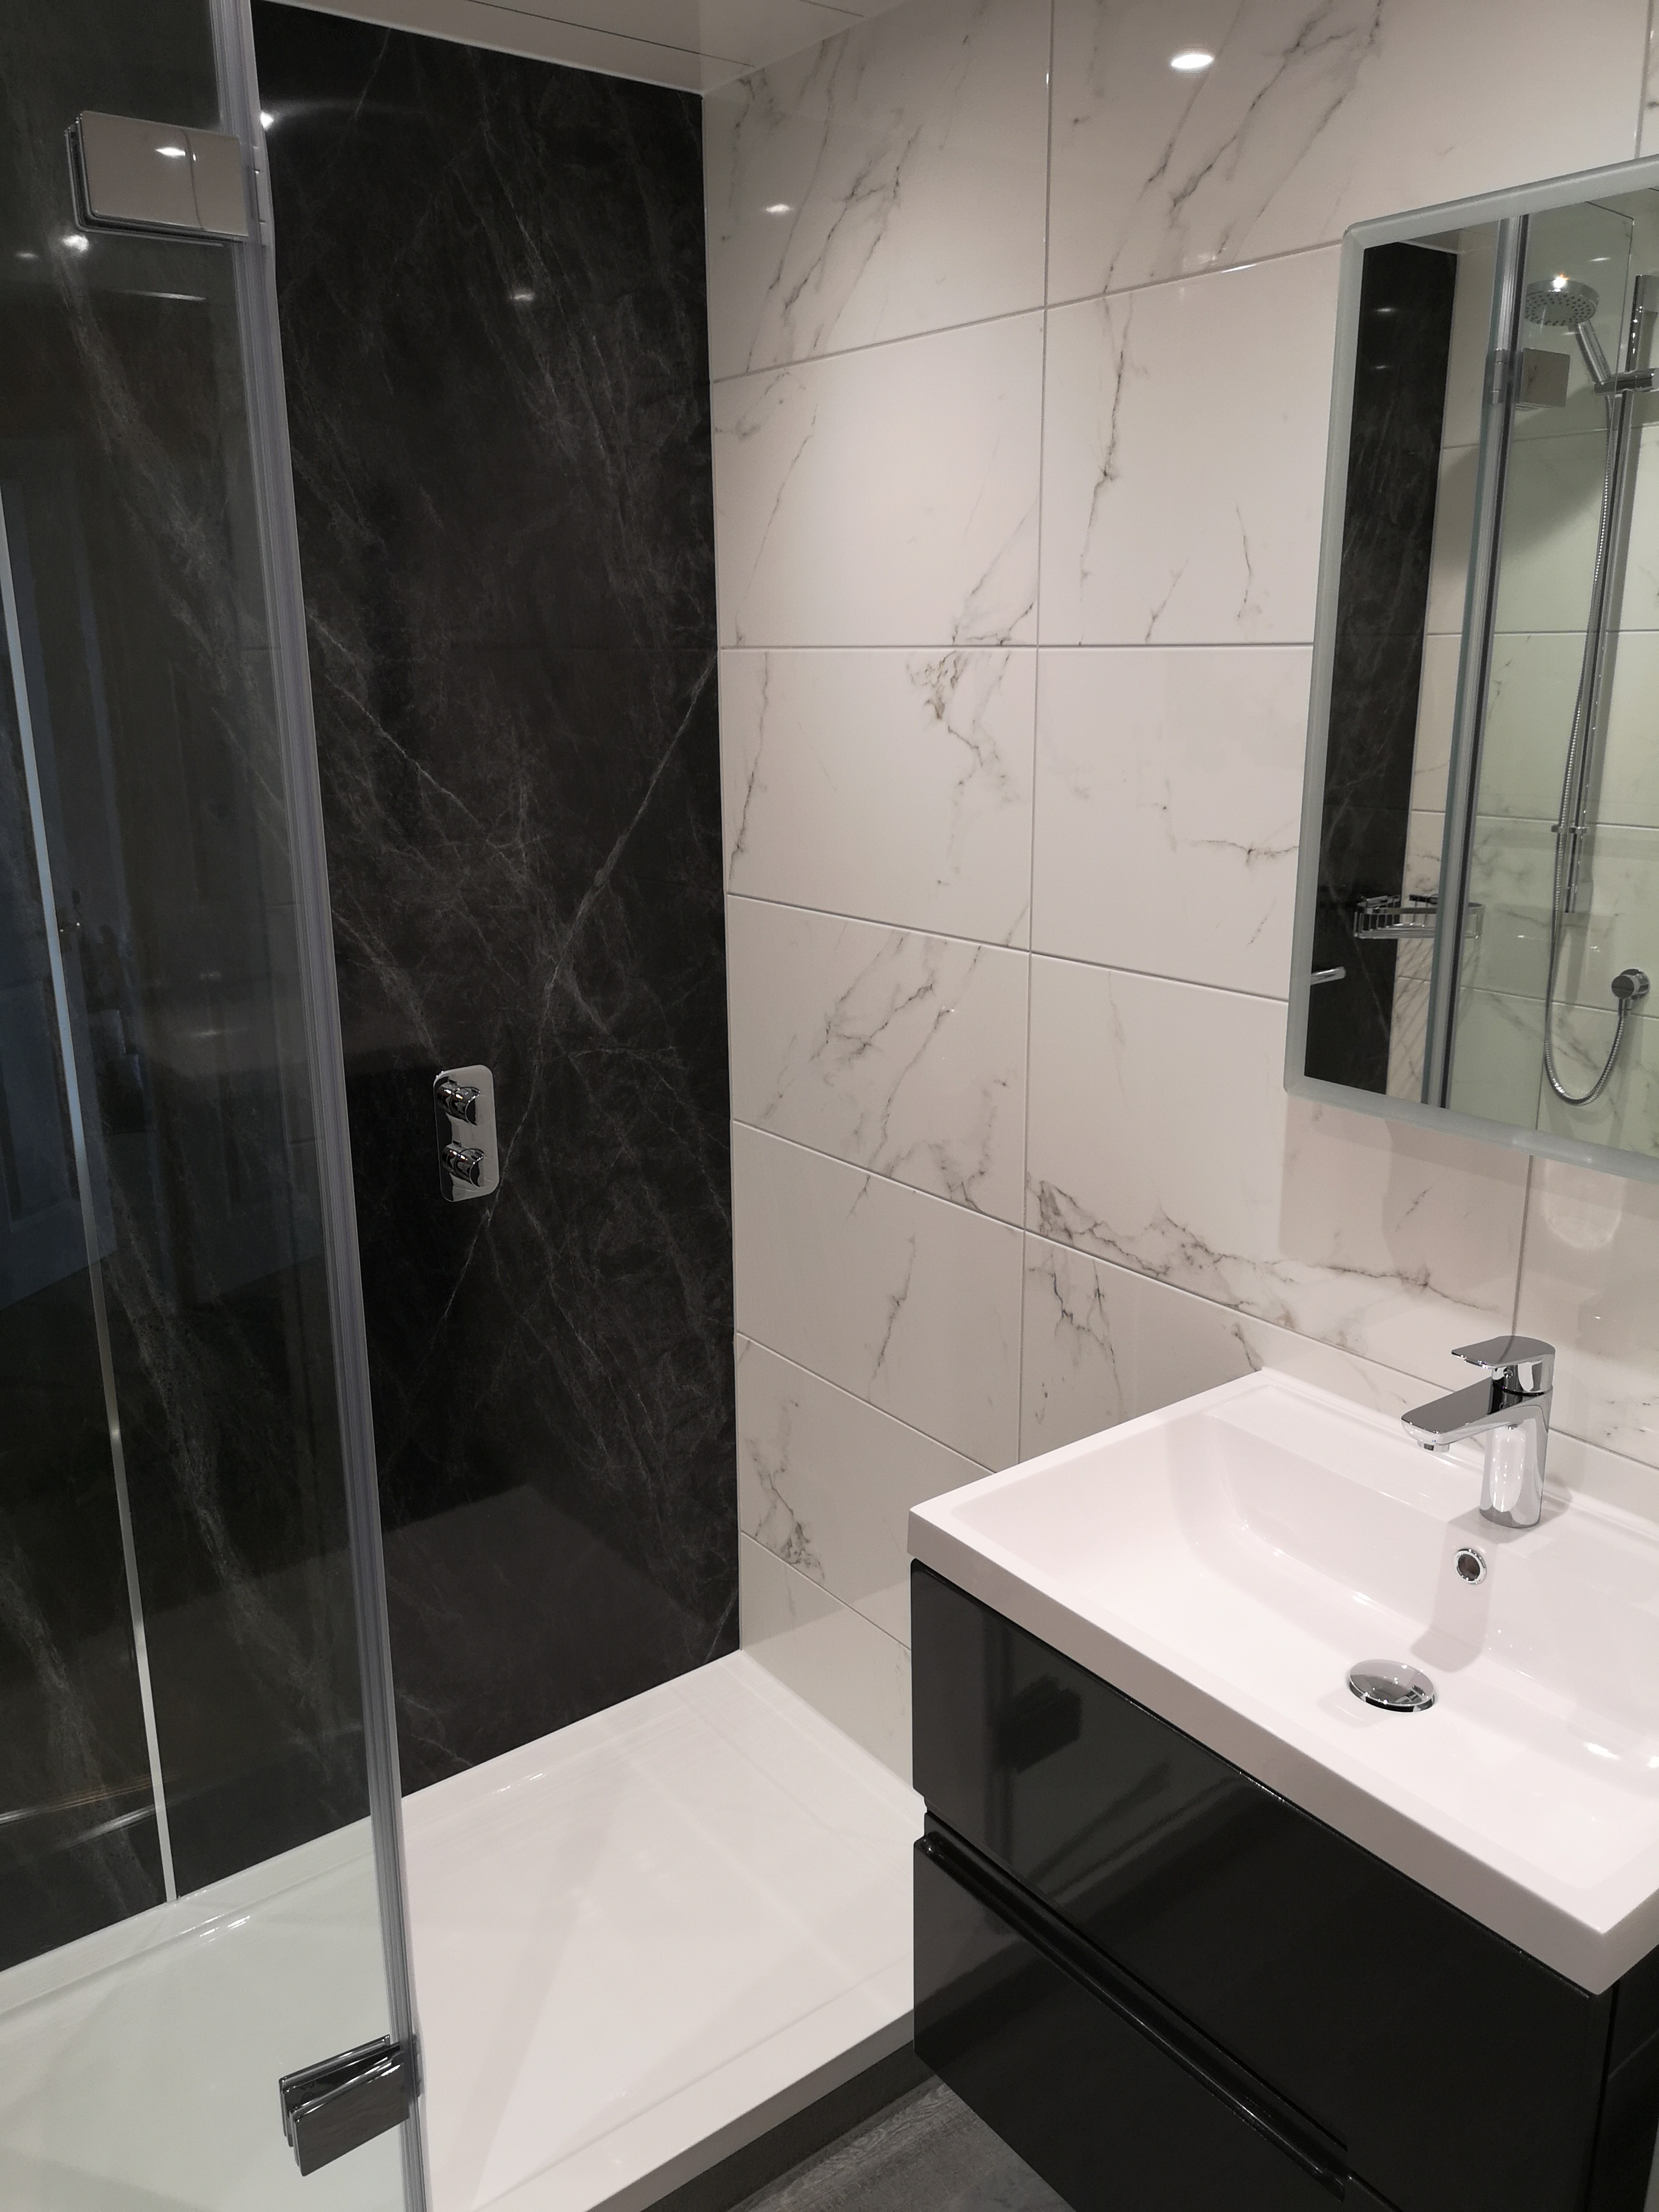 Larger shower with marble tiles and black wet wall panel.